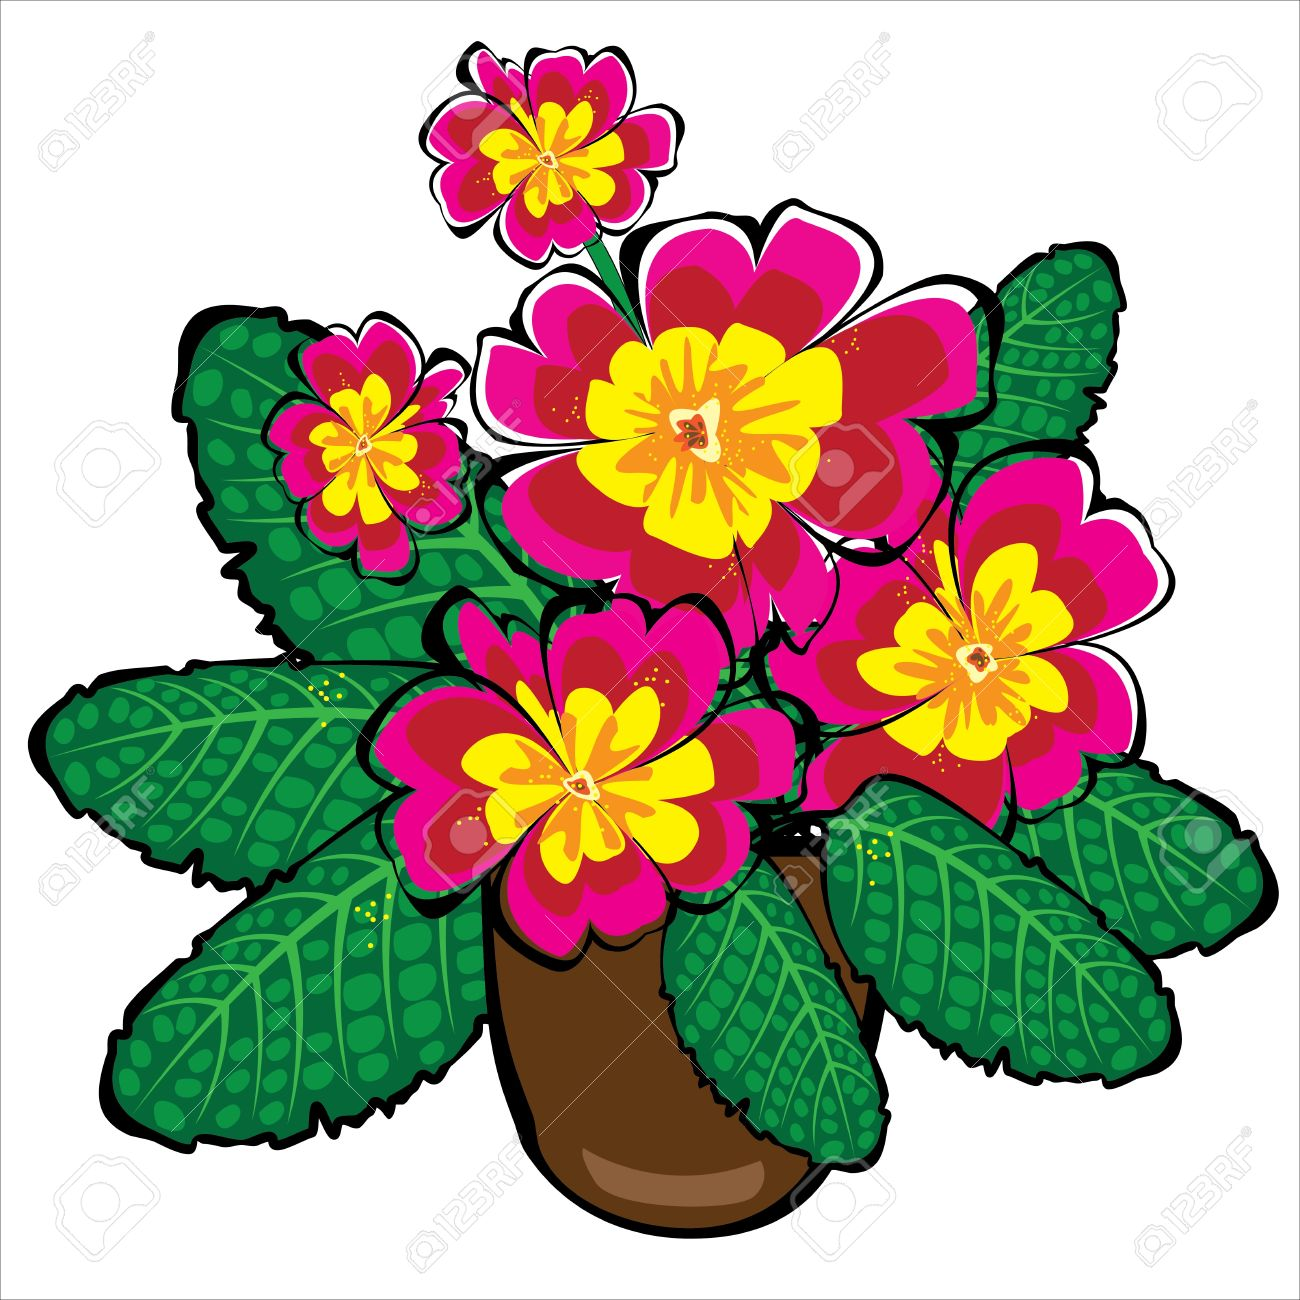 Primula clipart #18, Download drawings